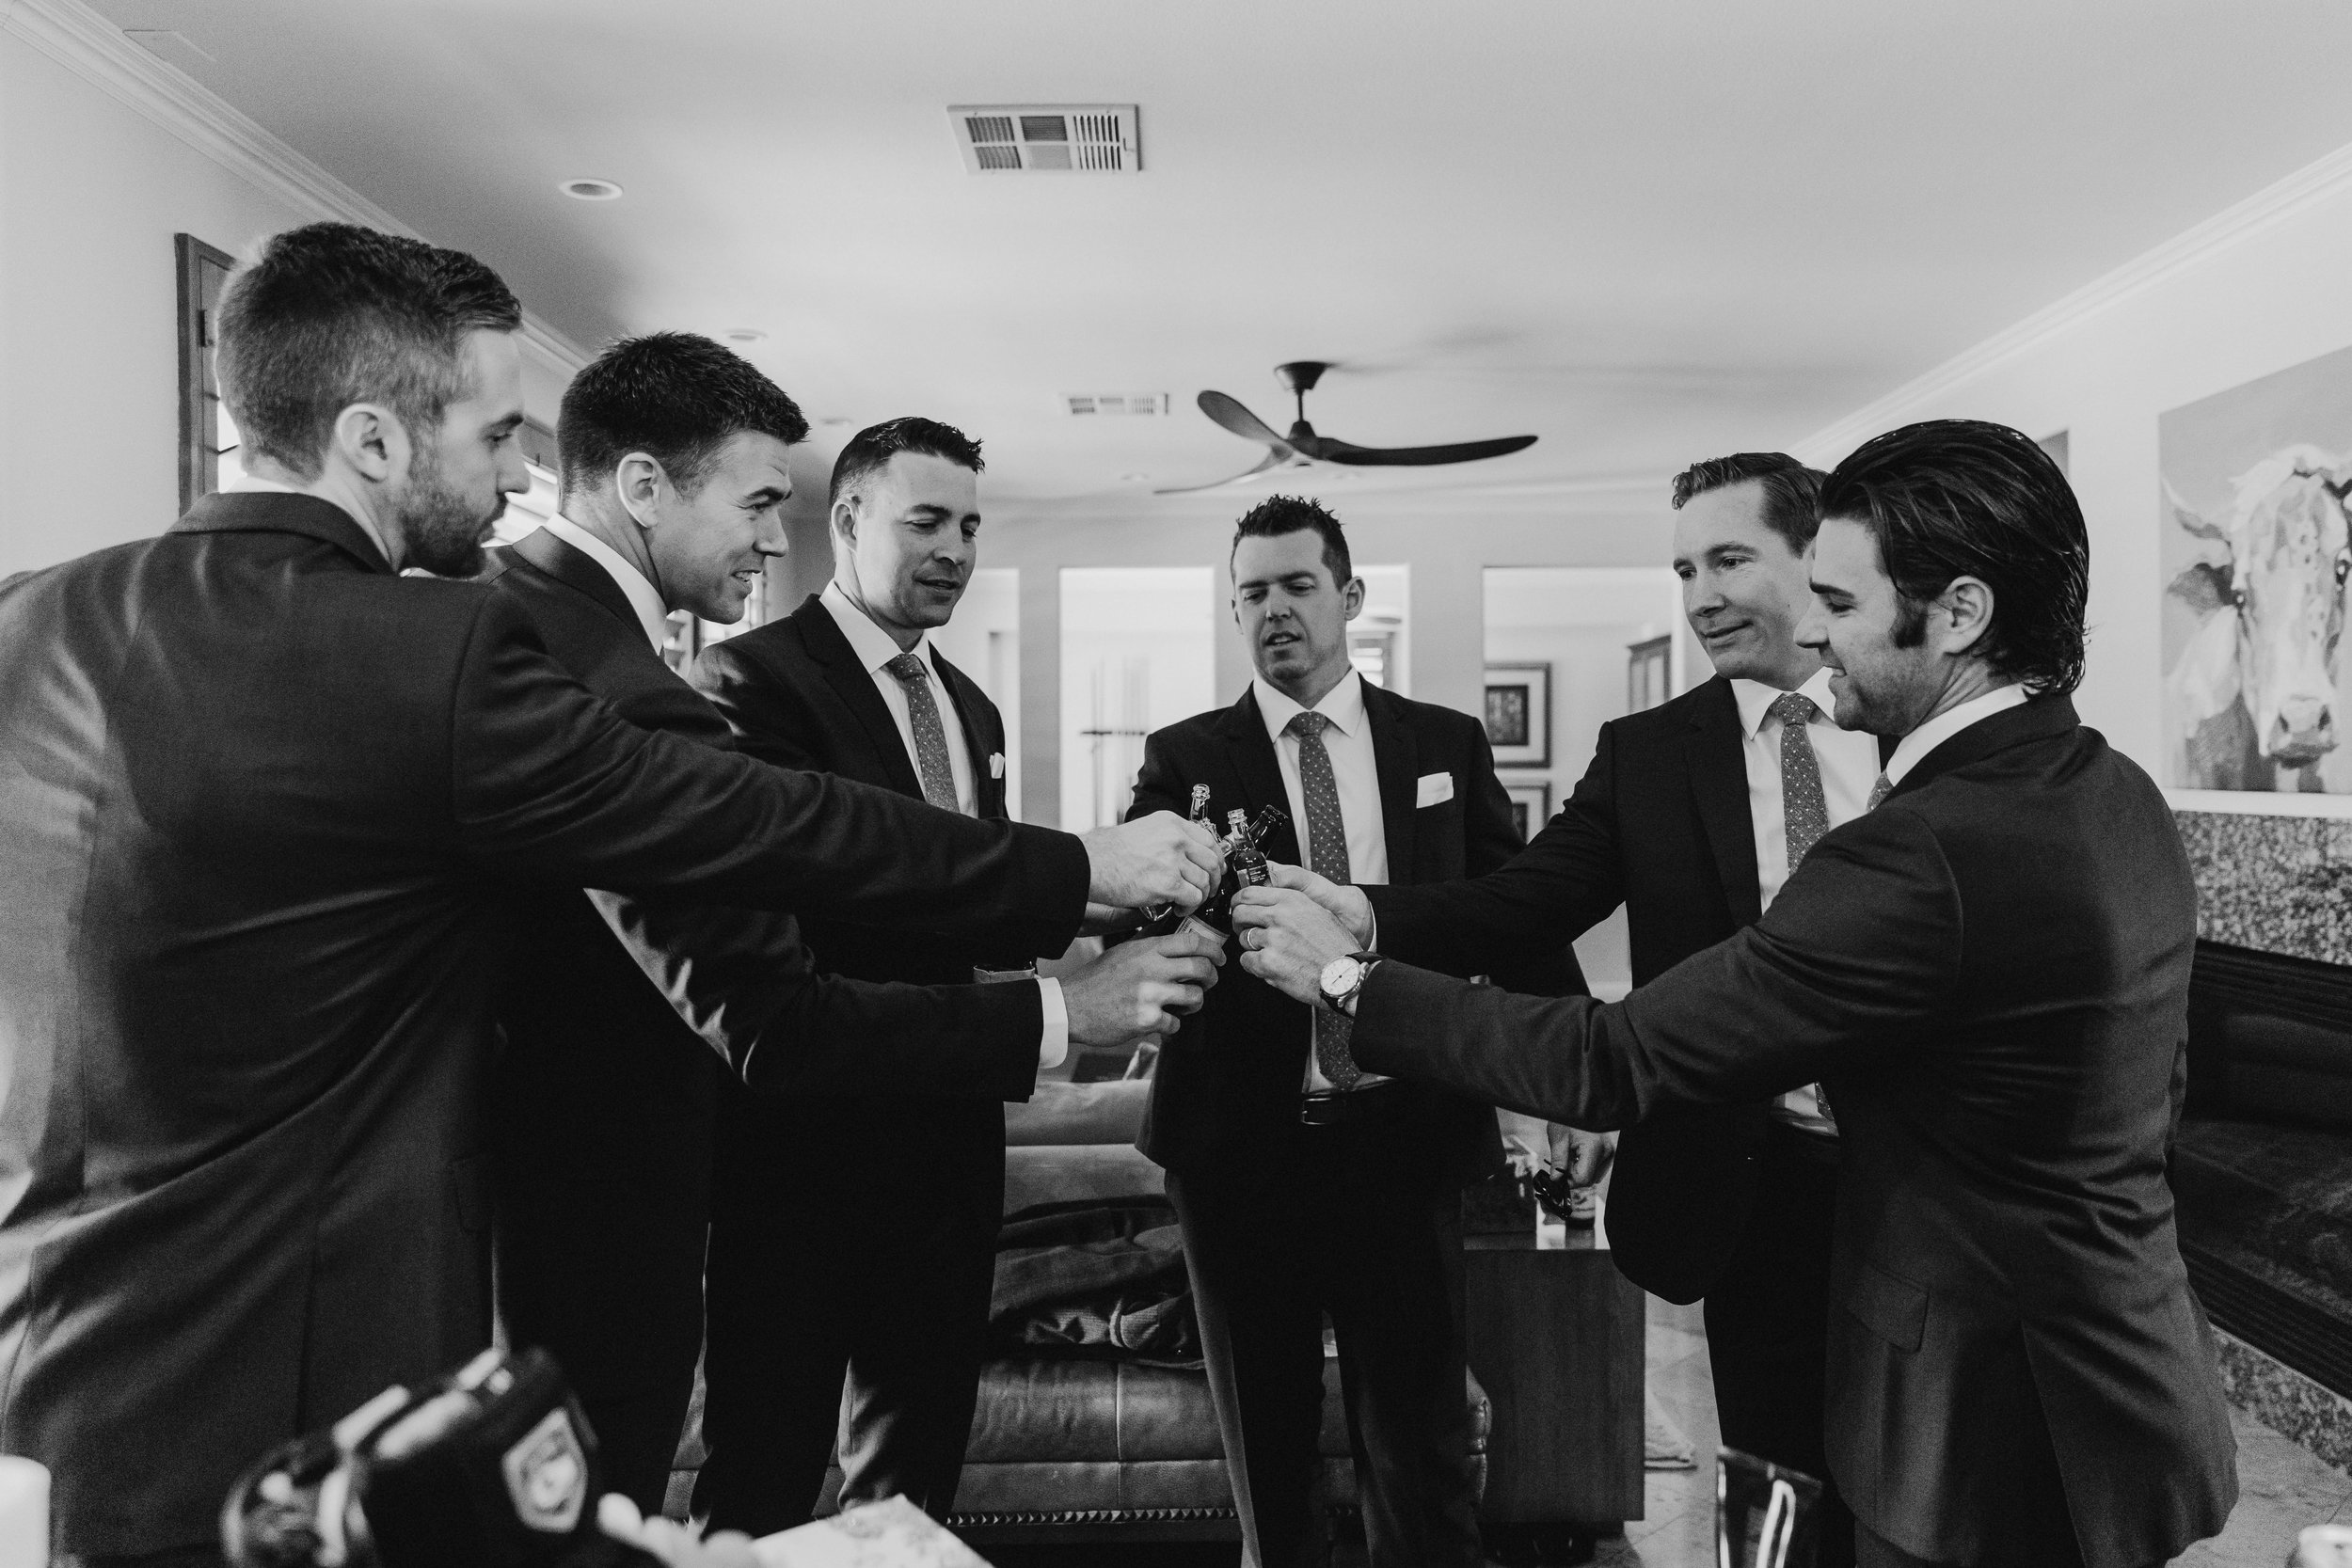 Dustin+Jamie_Wedding-18-Final-min.jpg